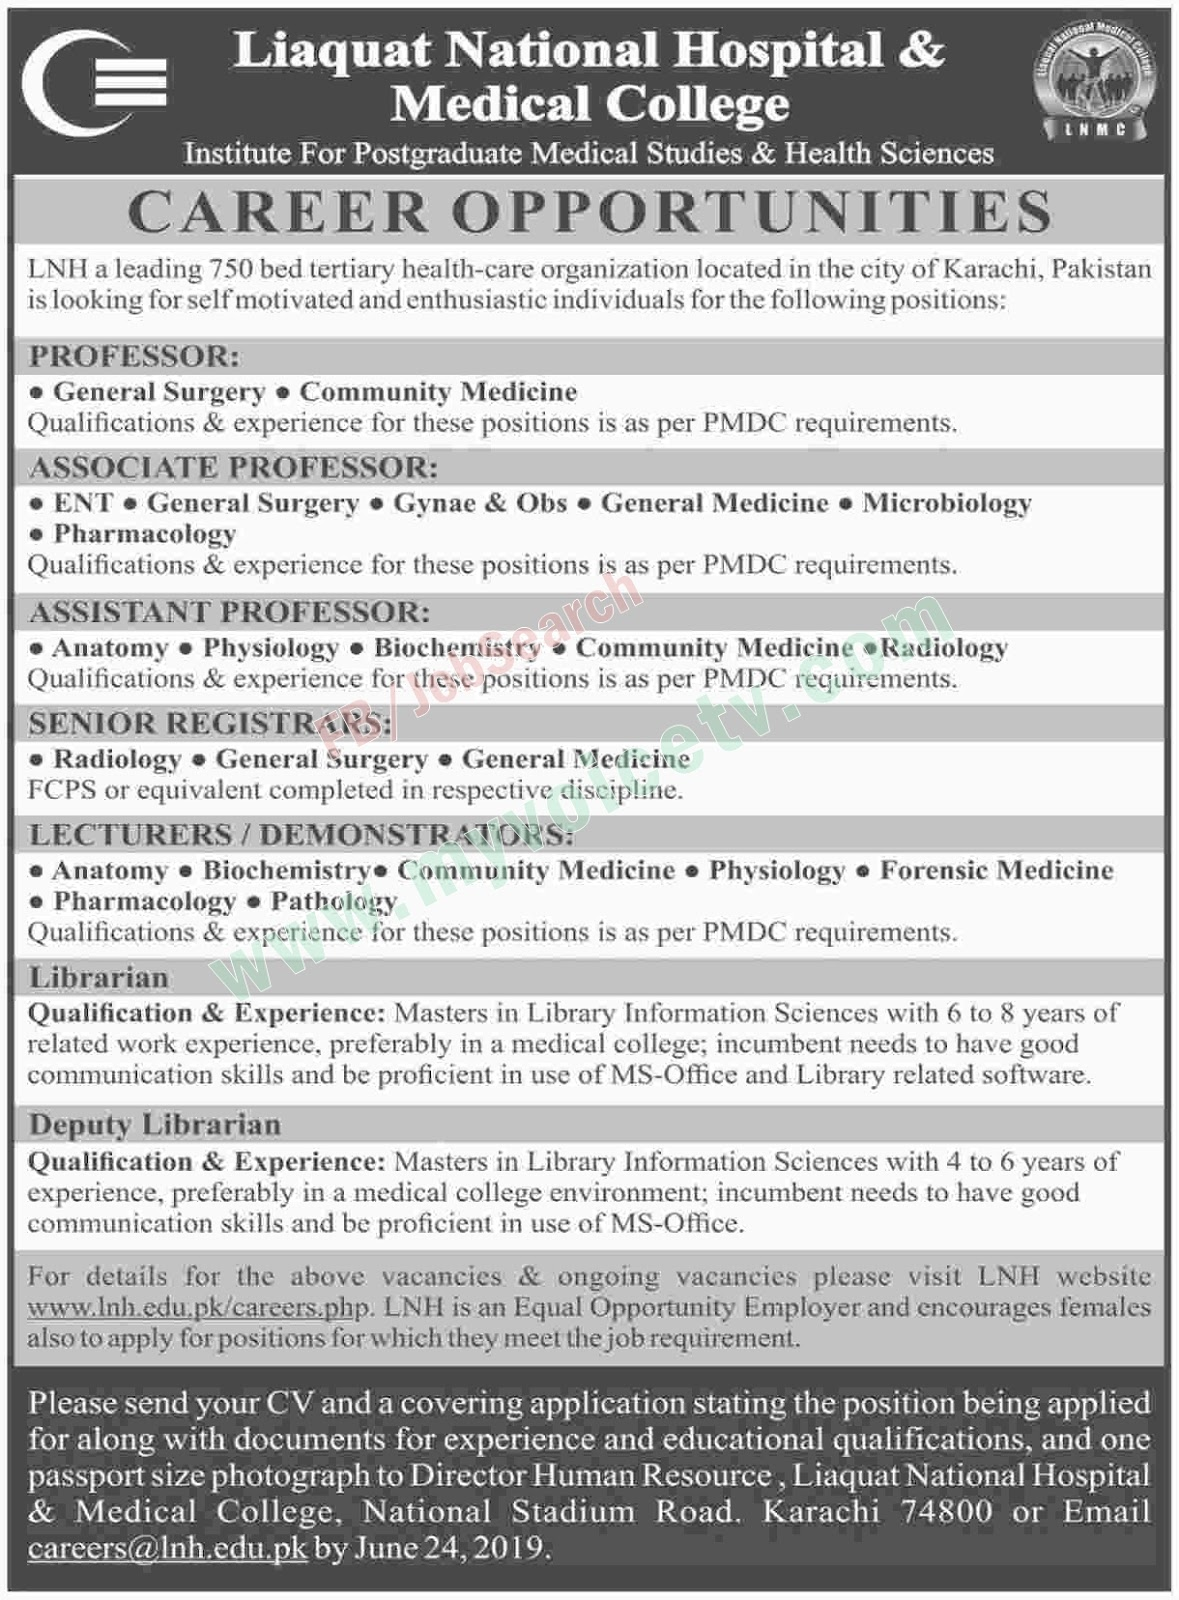 ➨ #Jobs - #Career_Opportunities - Liaquat National Hospital Karachi Job... Last date is 24 June 19